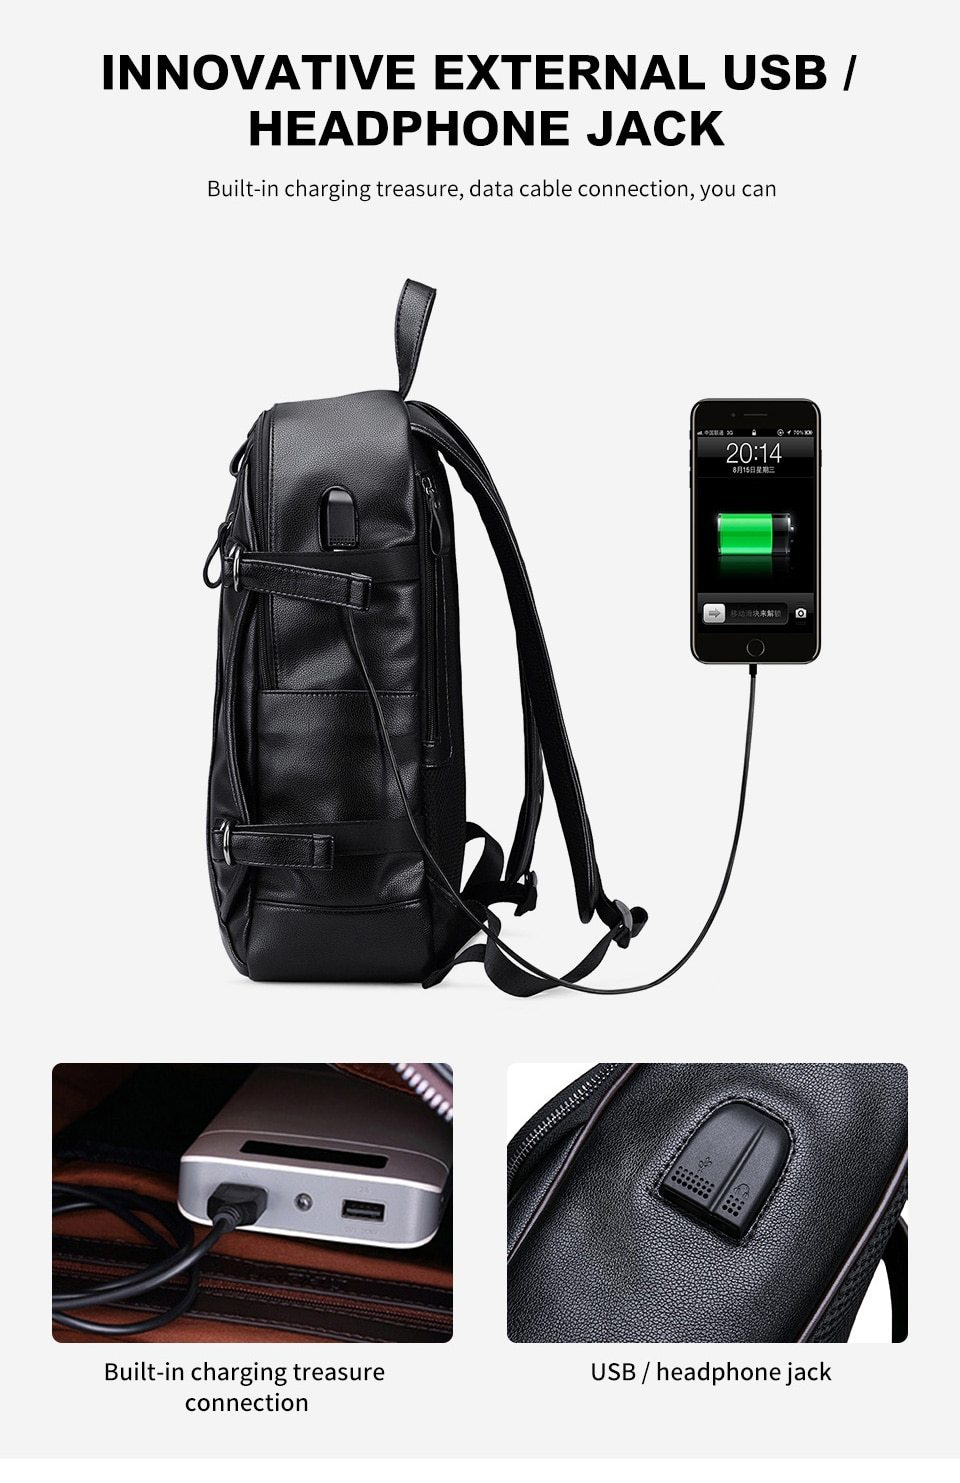 Rock Style Backpacks with External USB Charge - HARD'N'HEAVY